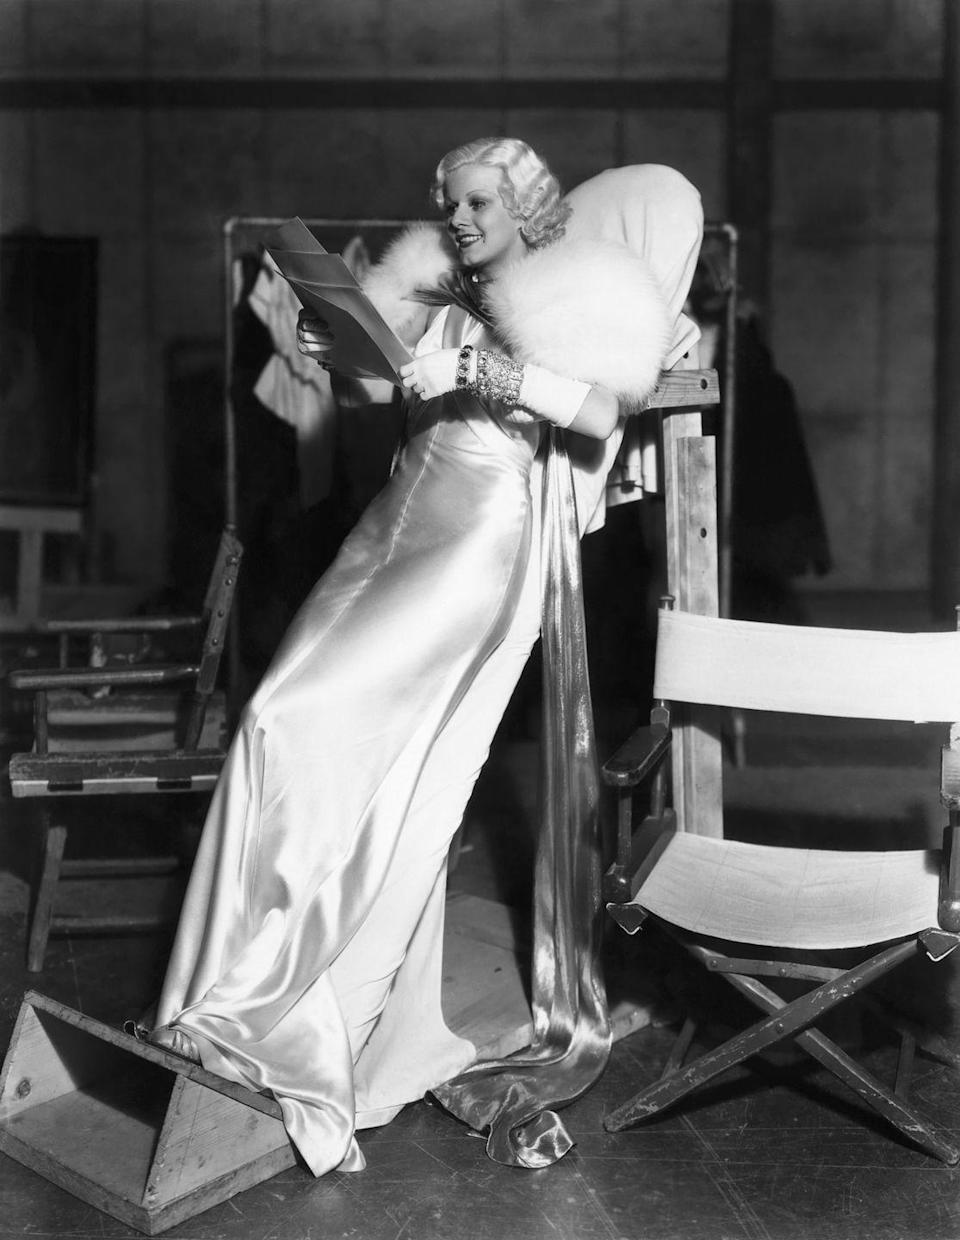 <p>Audiences expected Jean Harlow to bring the glamour while starring in <em>Dinner at Eight</em> as a sultry, social climbing wife. The film star delivered, showing off a wrist stacked with four diamond and gemstone bracelets, laid over a white satin glove. The art deco jewels were the perfect compliment to the iconic ensemble that Harlow is remembered for. </p>